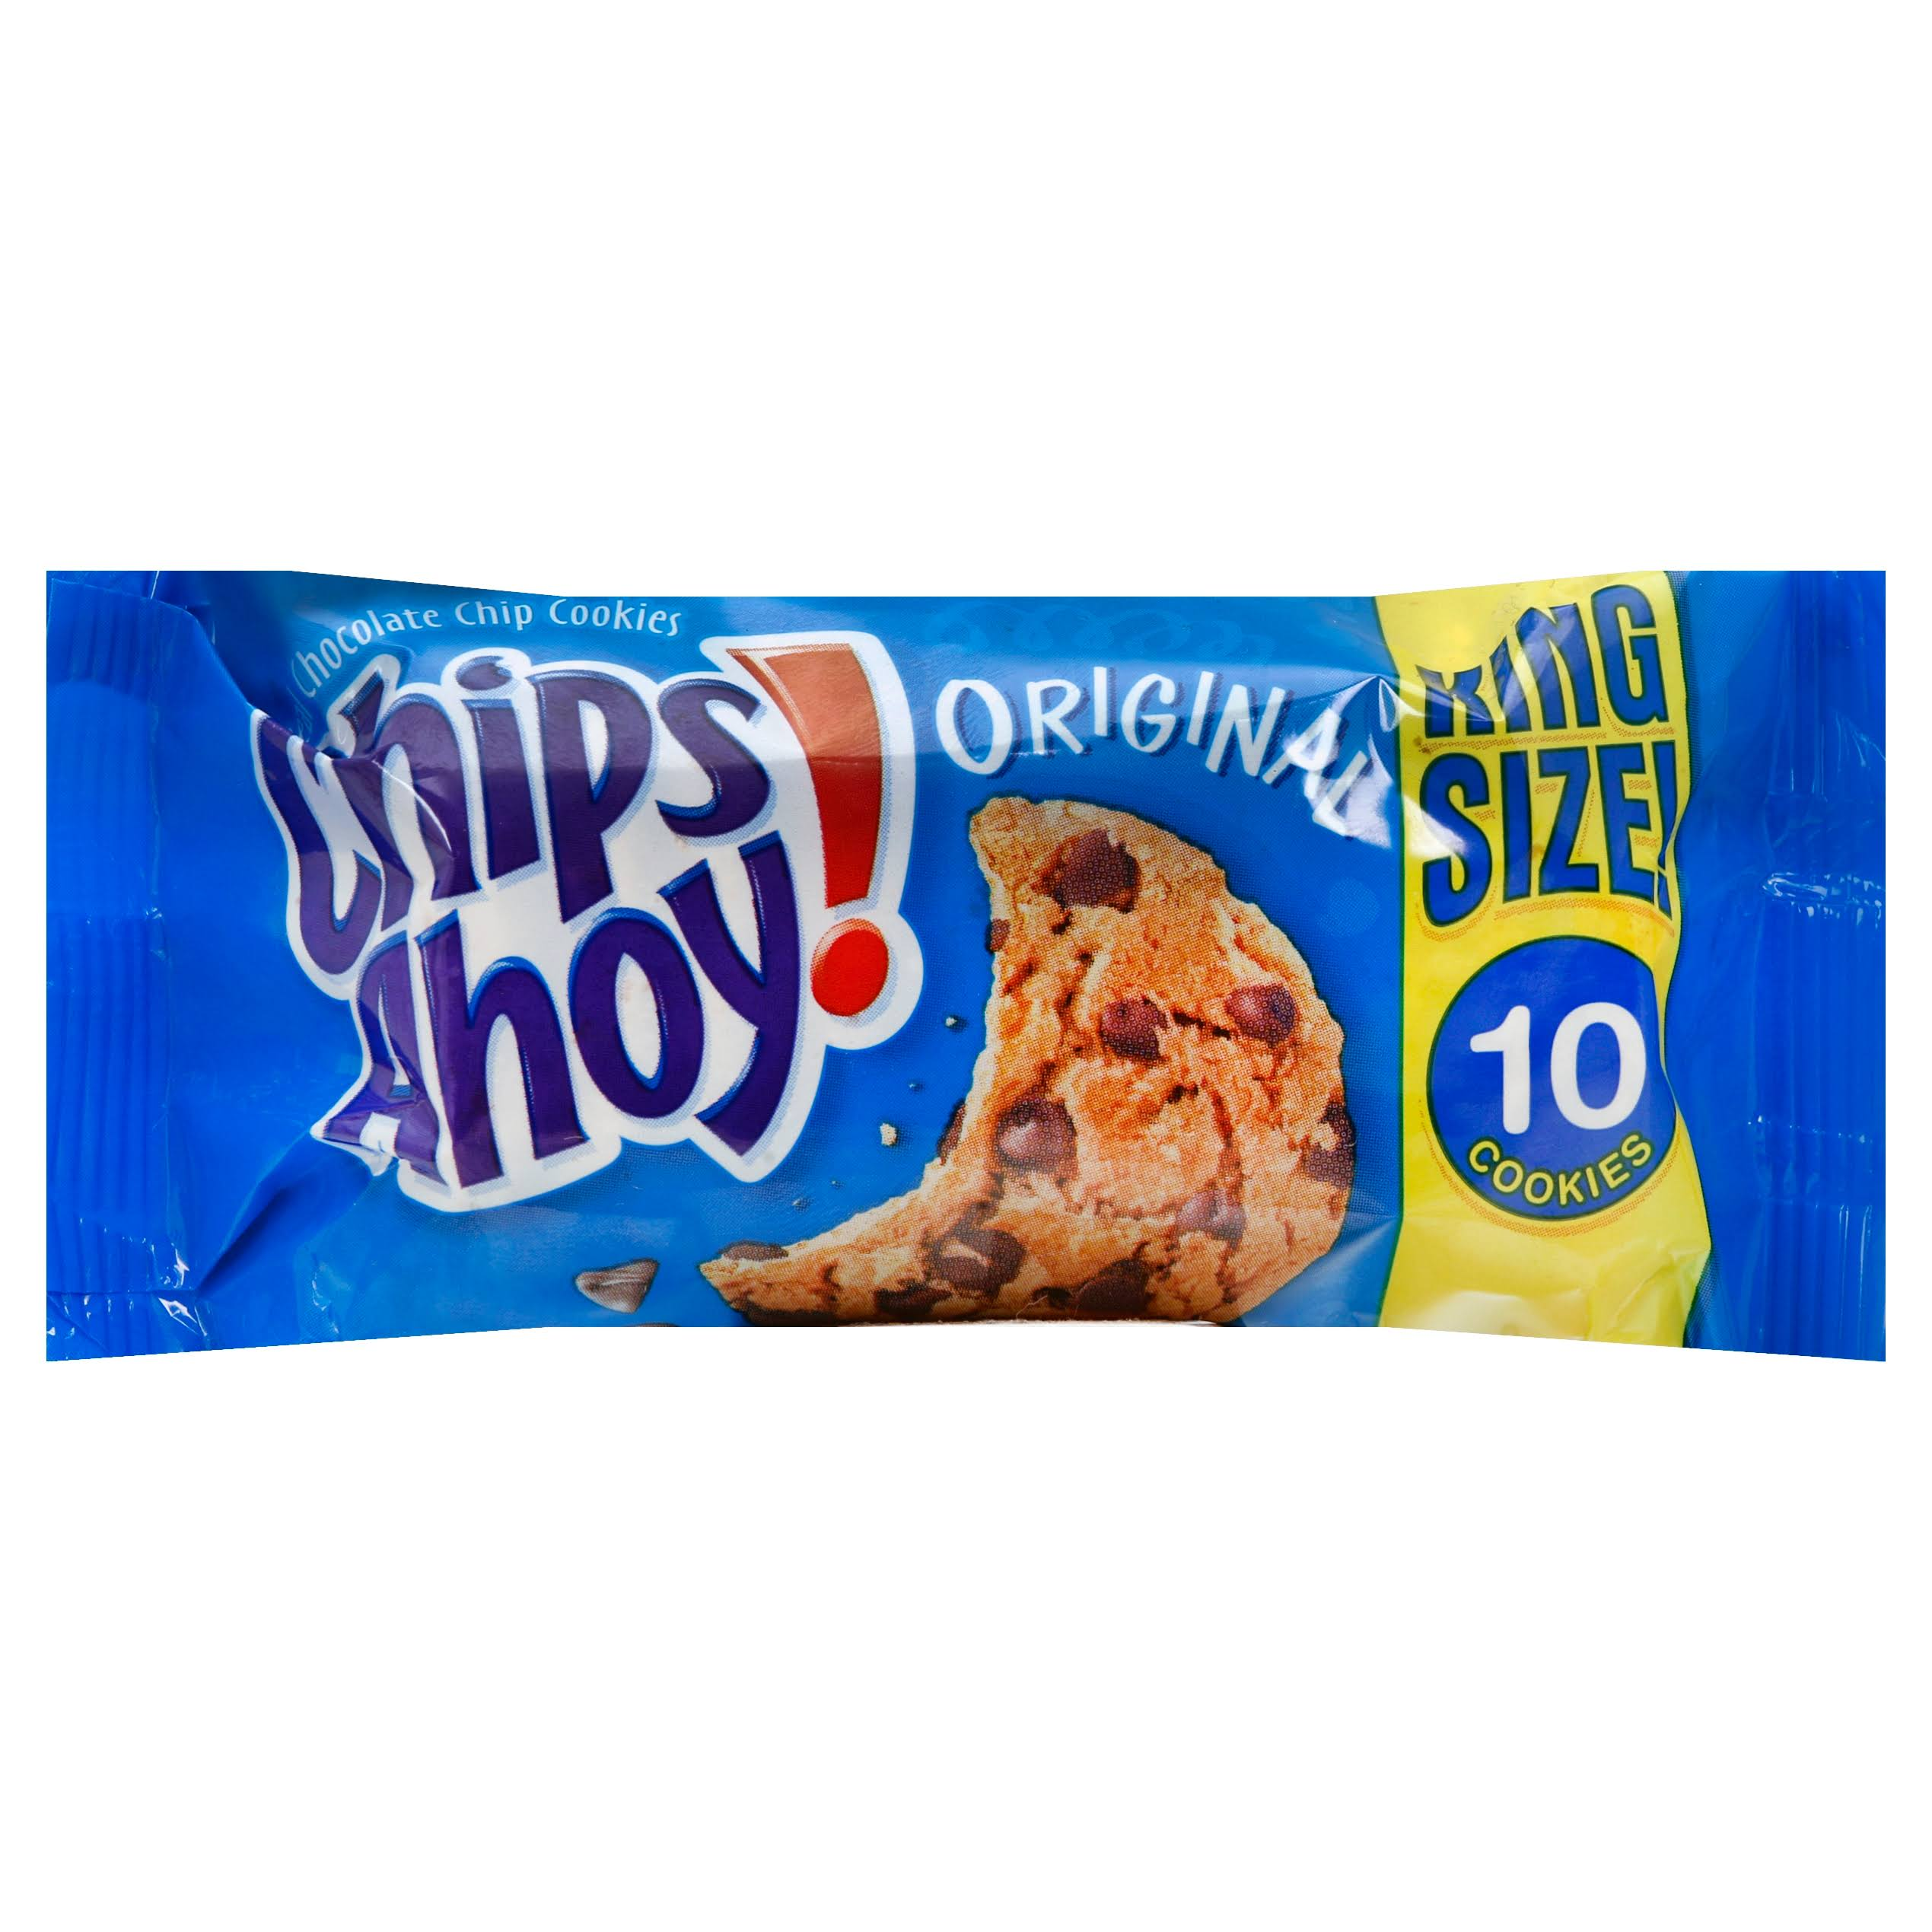 Chips Ahoy Cookies, Chocolate Chip, Original, King Size - 3.75 oz